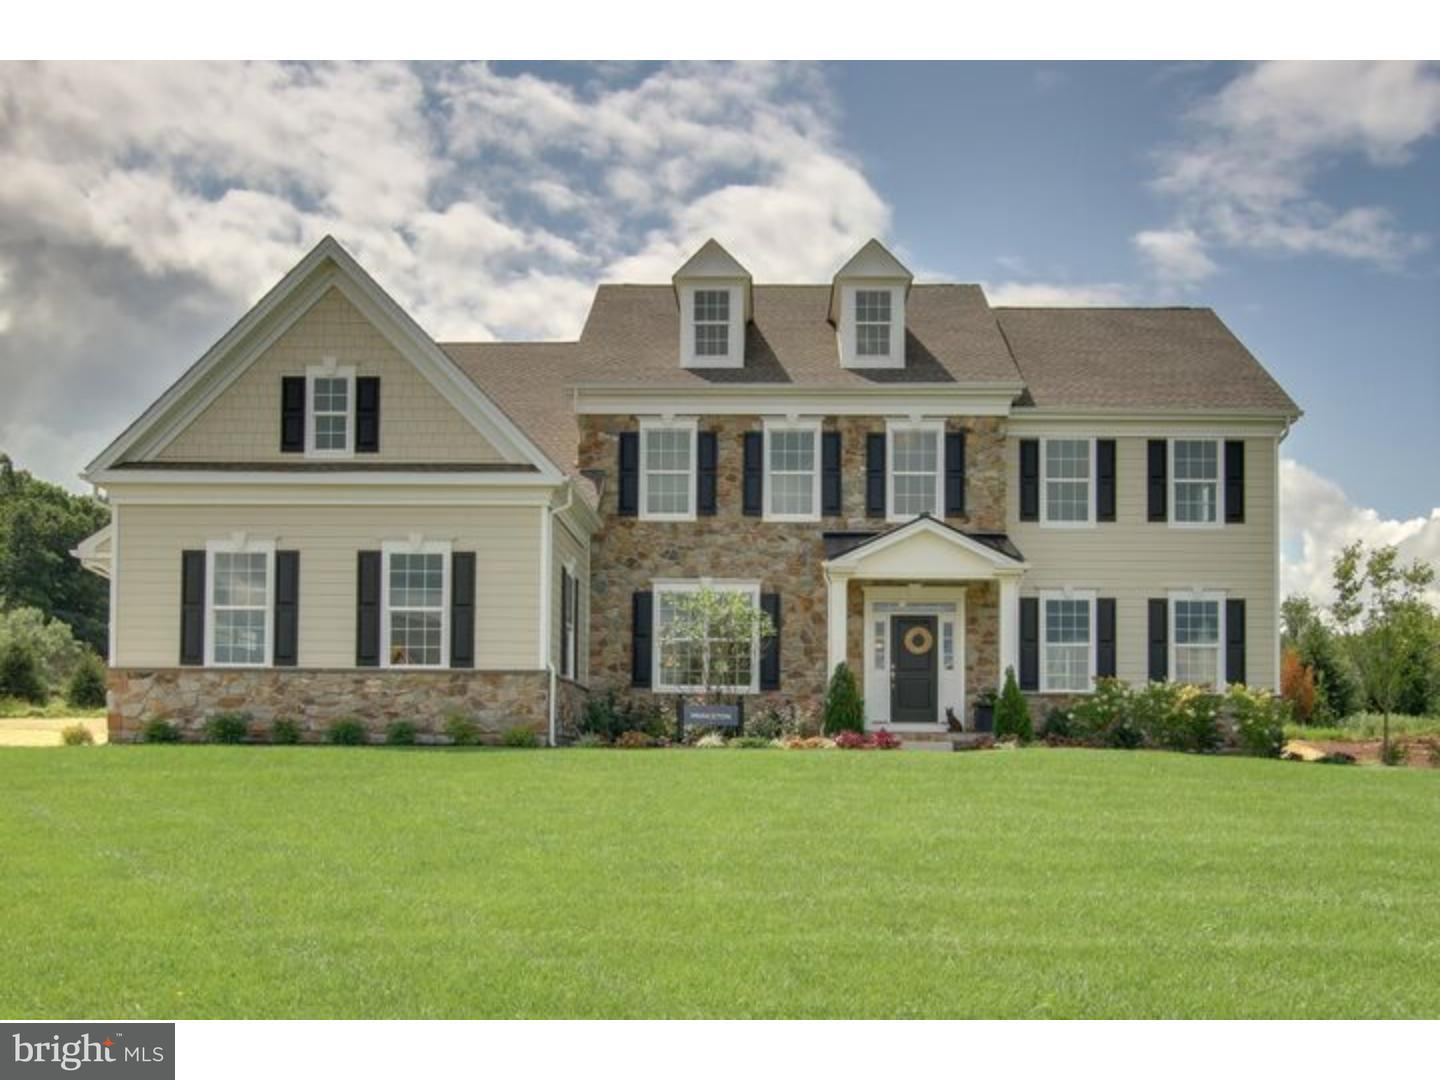 5 BENNETT LN, WRIGHTSTOWN - Listed at $993,880, WRIGHTSTOWN